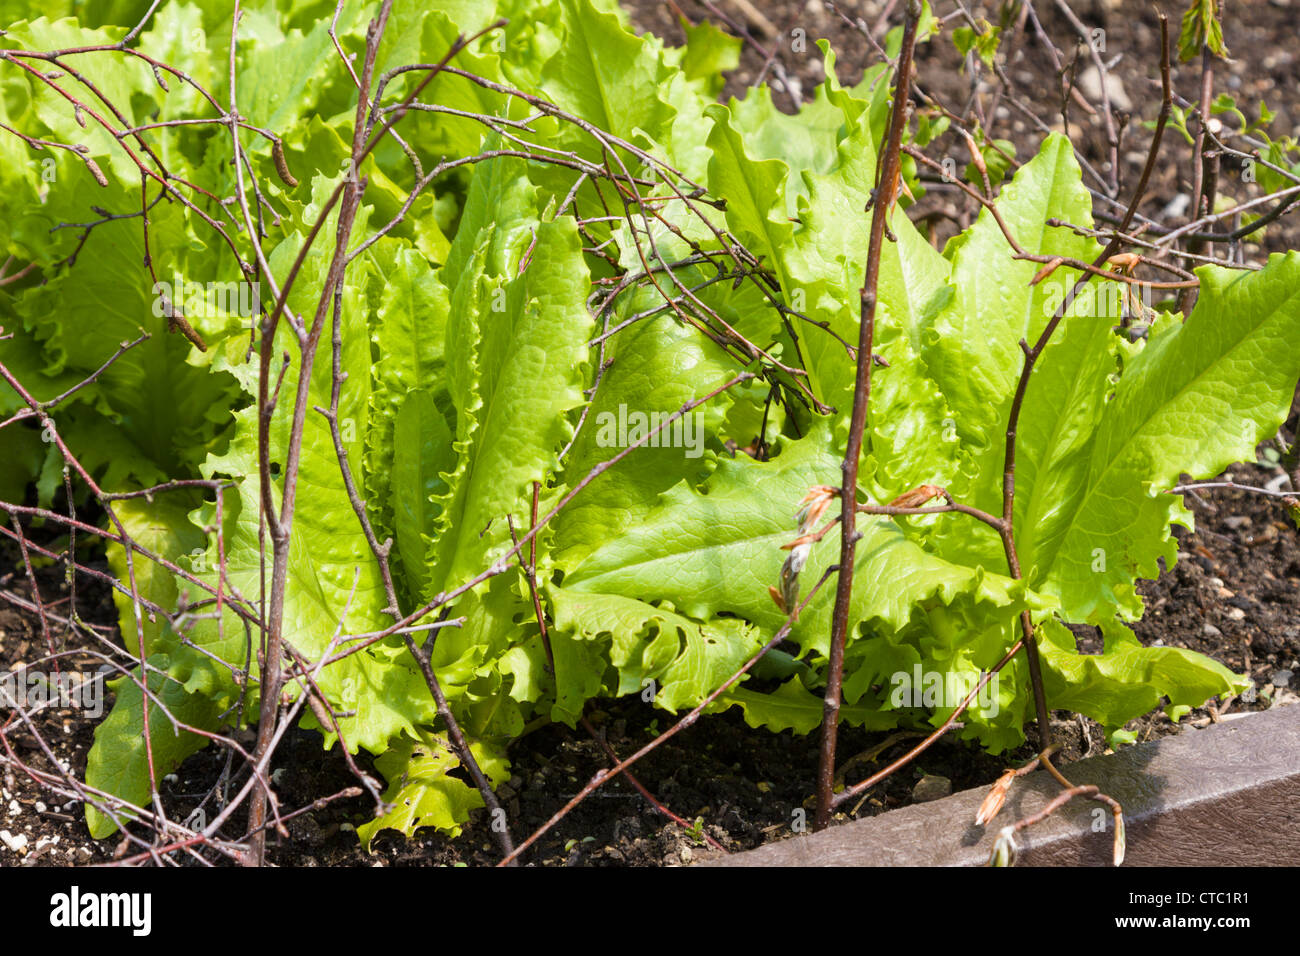 Lettuce being protected from pigeons by twigs - Stock Image